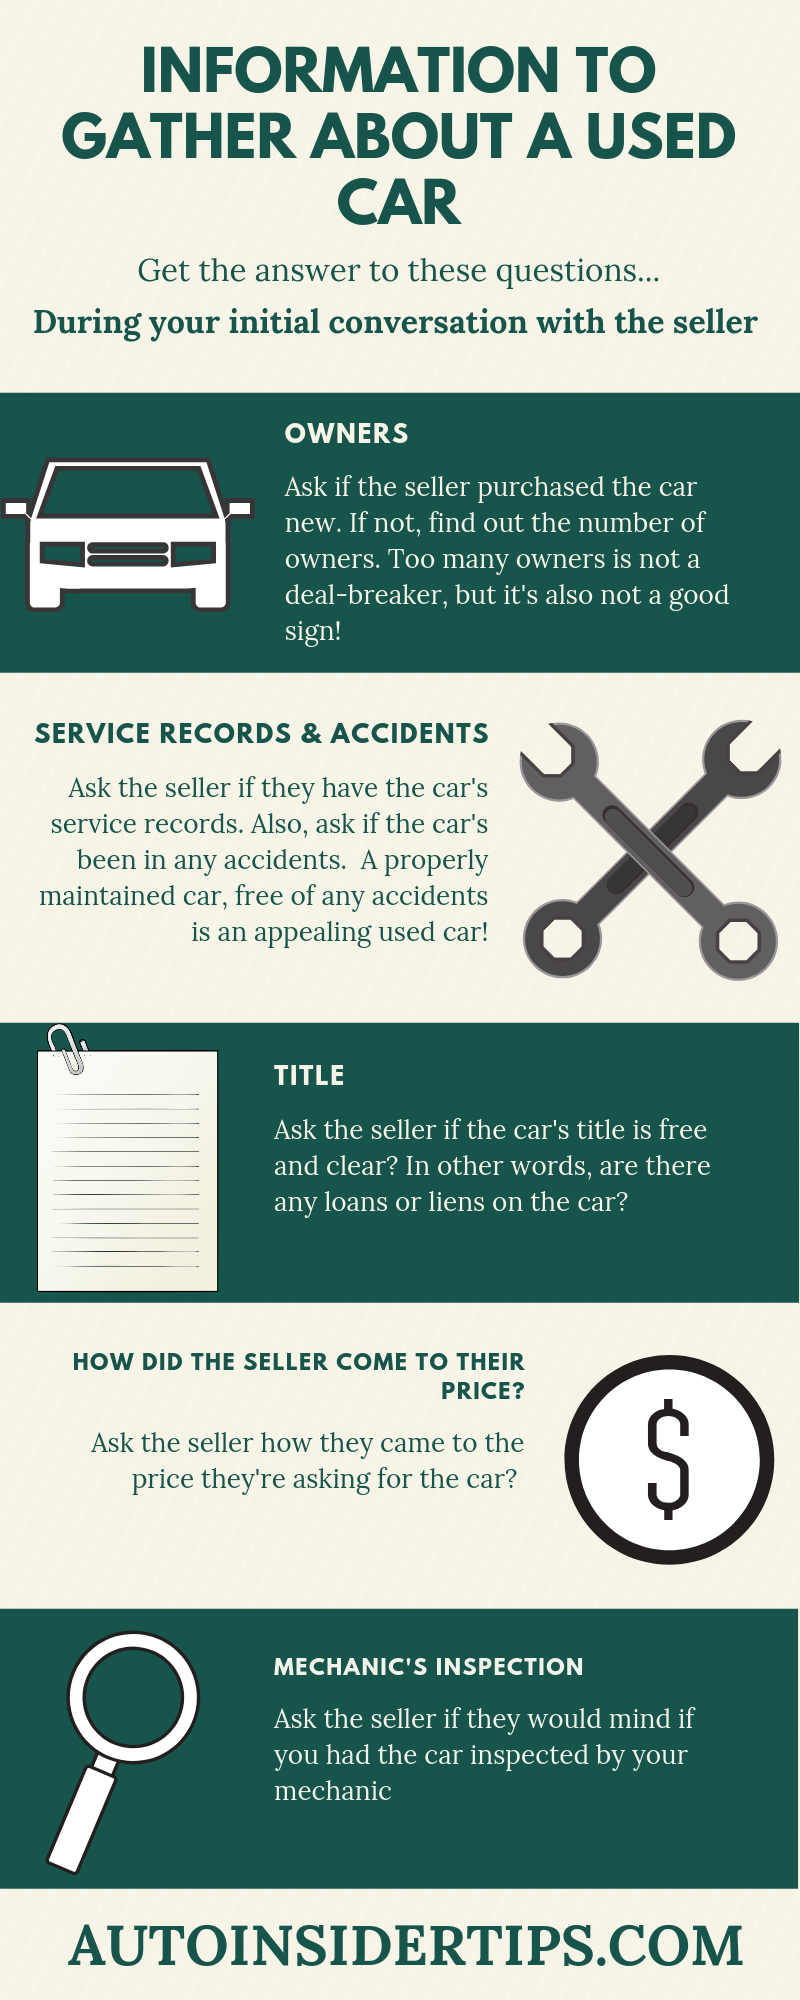 Information you need about a used car before buying it